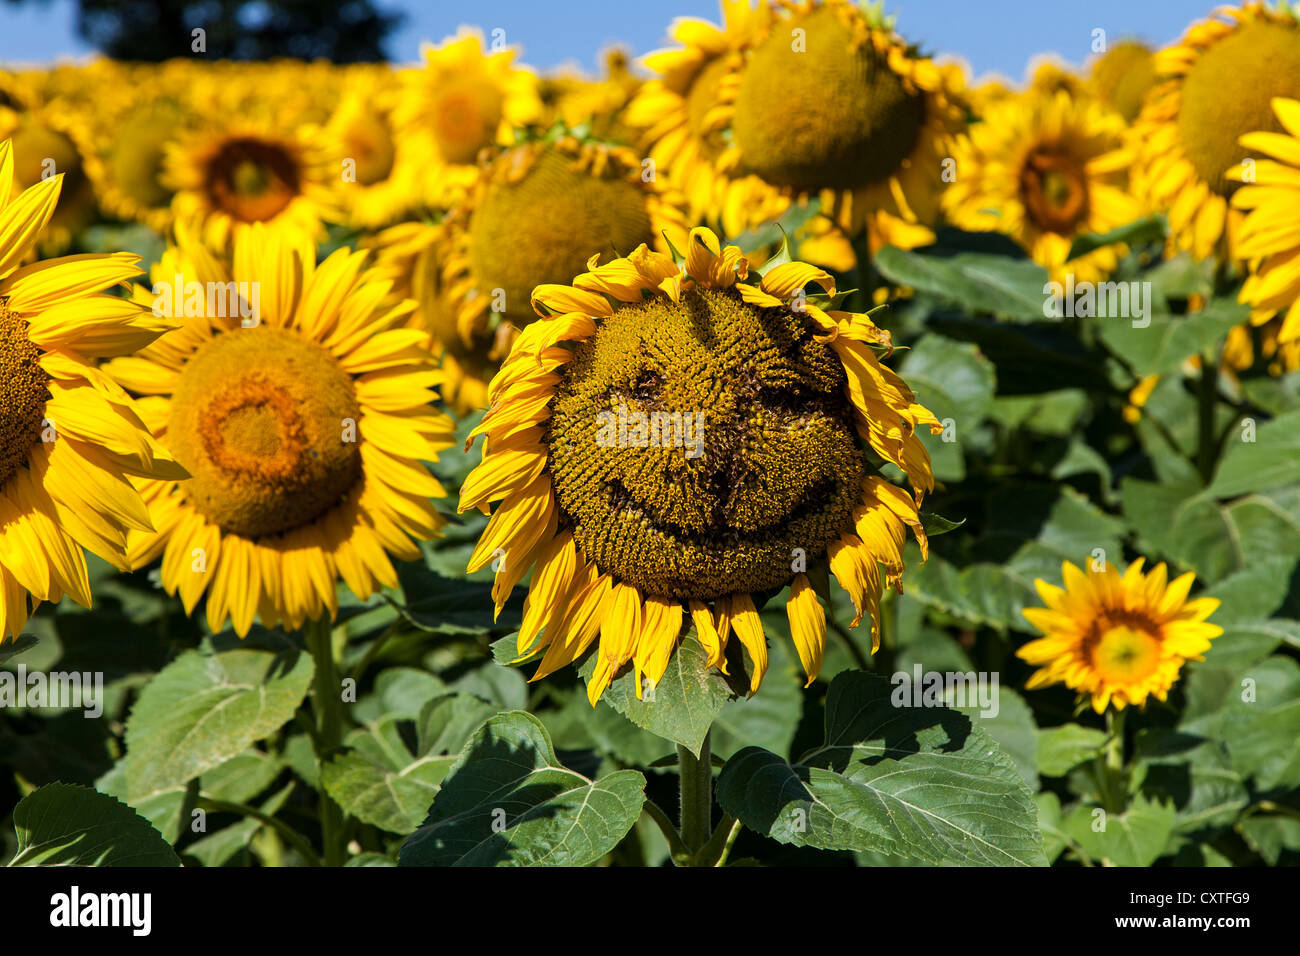 Sunflower with face drawn onto it in the Gers, Gascony, France - Stock Image